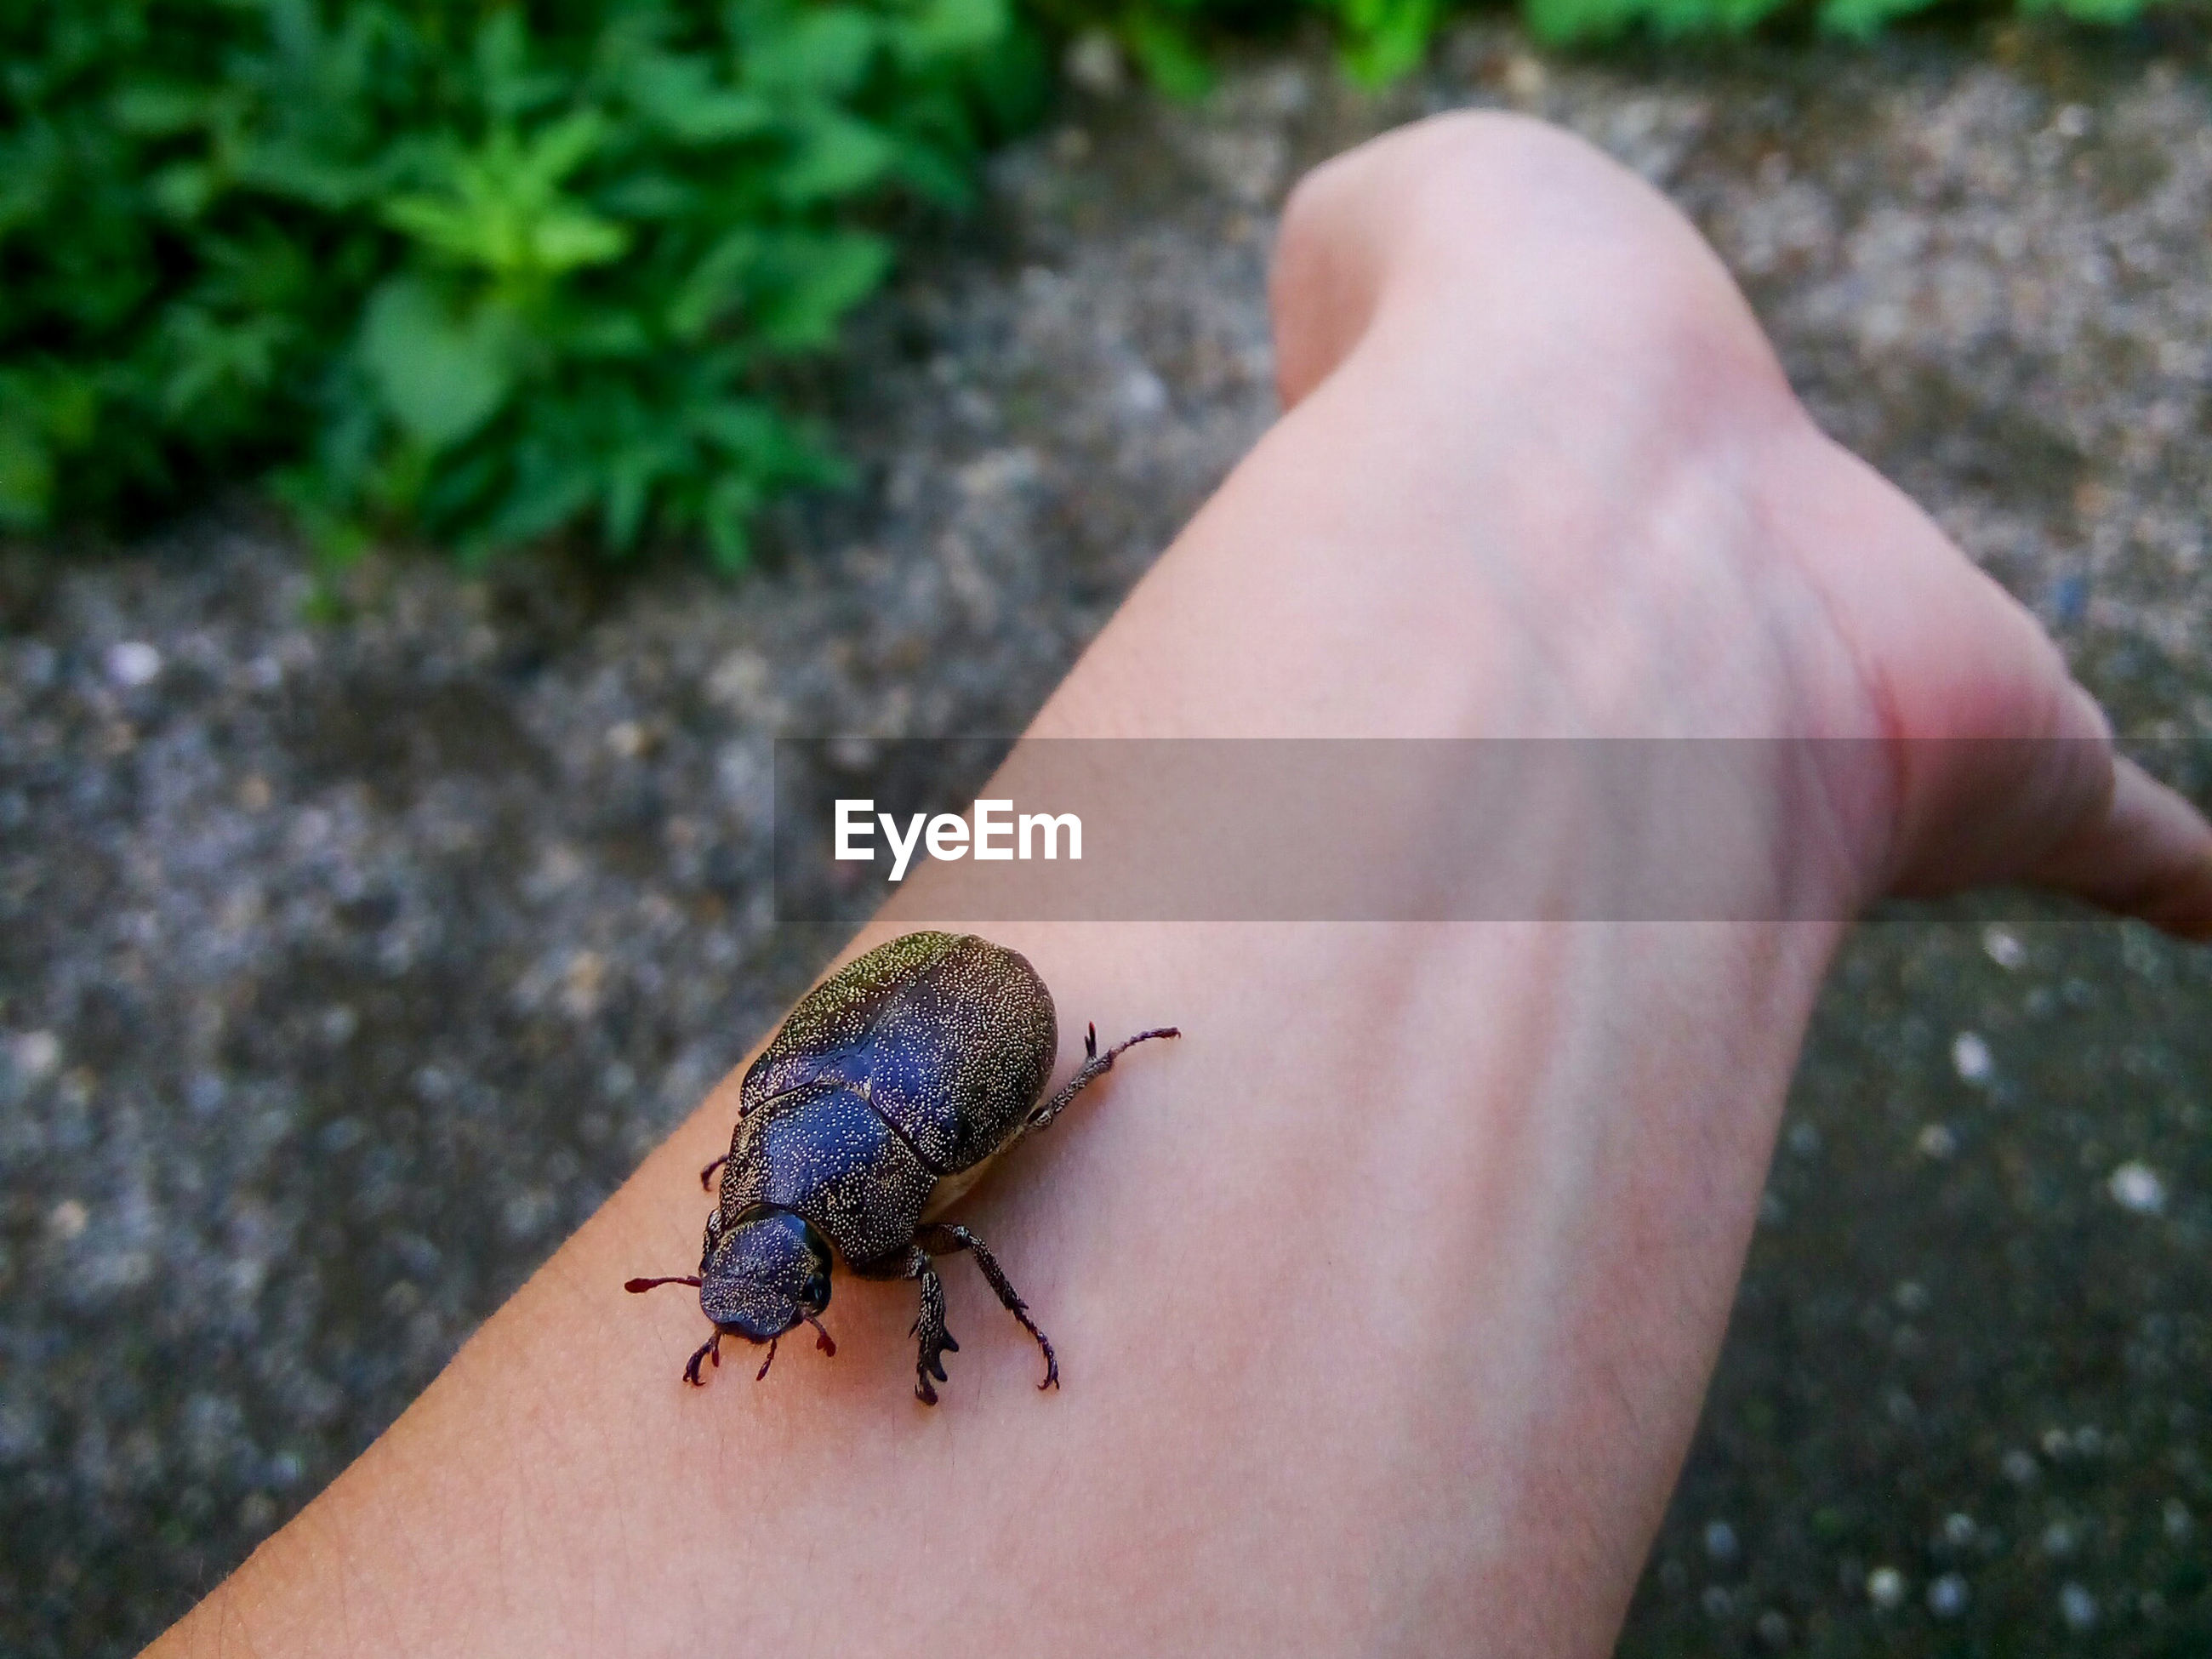 Cropped image of hand holding beetle at field